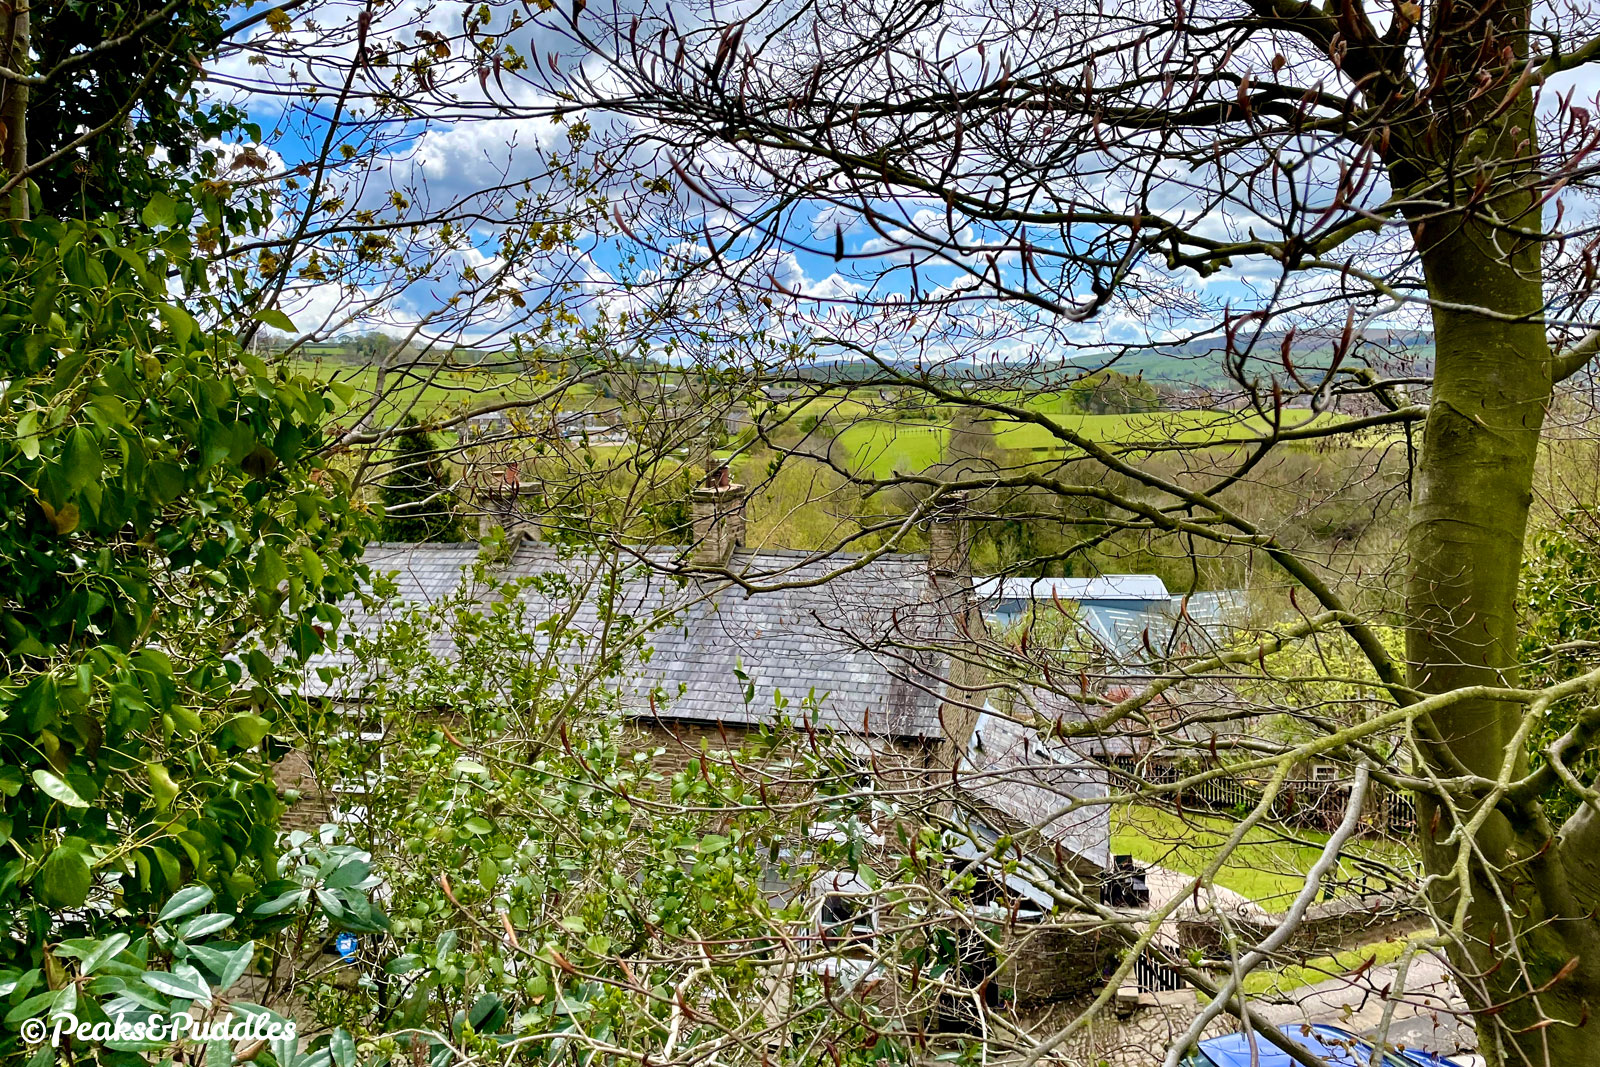 A view through the trees over Birch Vale from Sitch Lane, Thornsett.